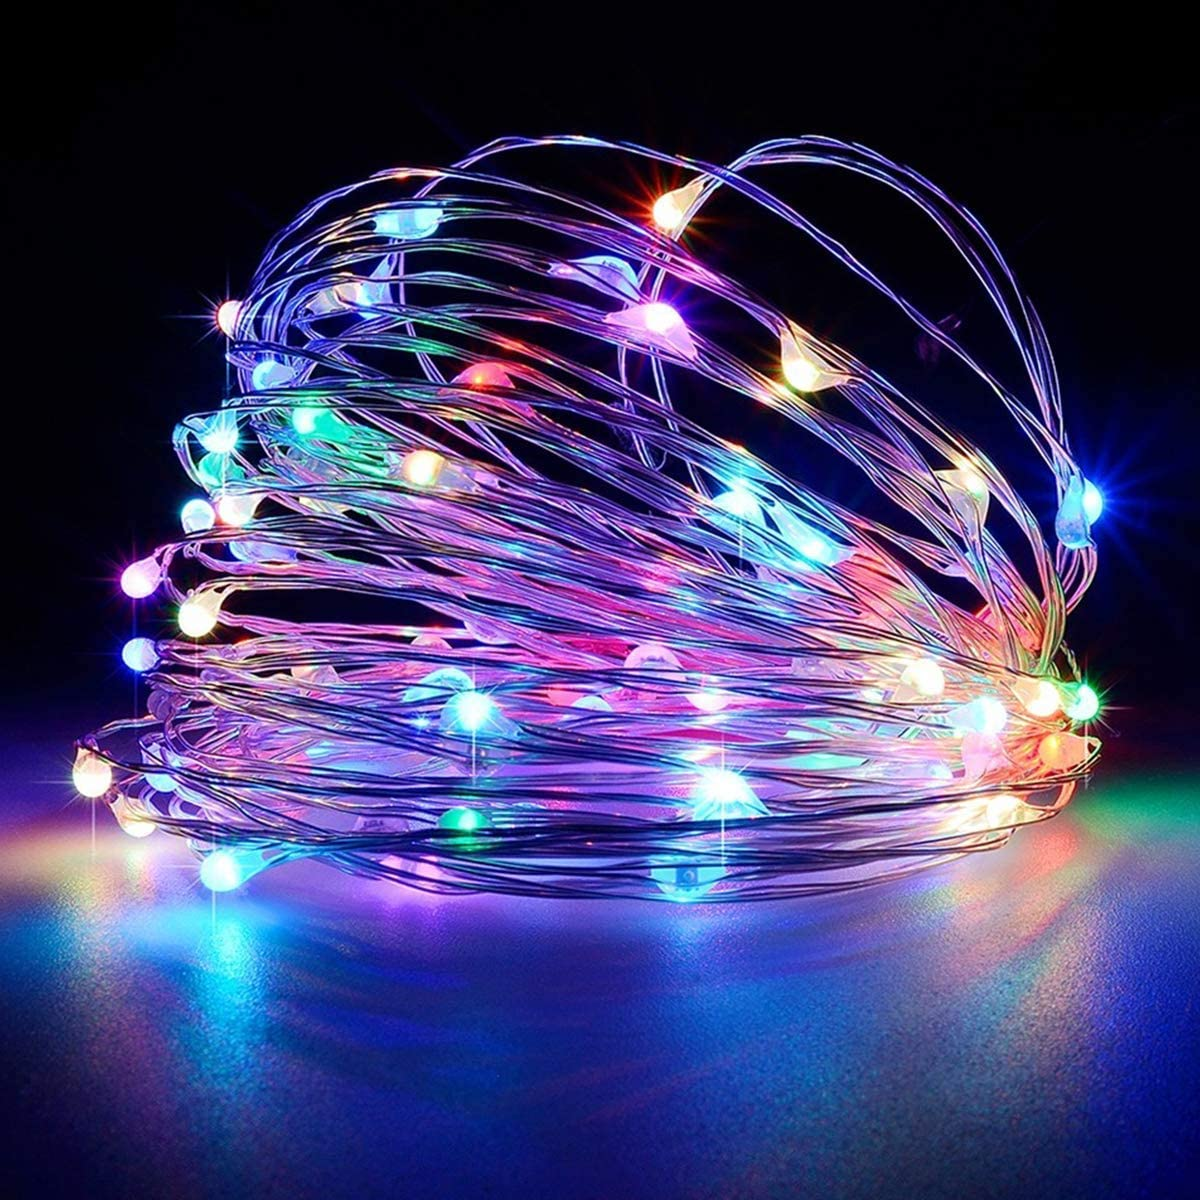 LiyuanQ Battery Operated String Lights, Led Mini Fairy String Lights 50 LED 16.5 FT Battery Powered Sliver Wire Starry Fairy Lights for Indoor Outdoor Wedding Home Garden Party Decor (Multi Color)